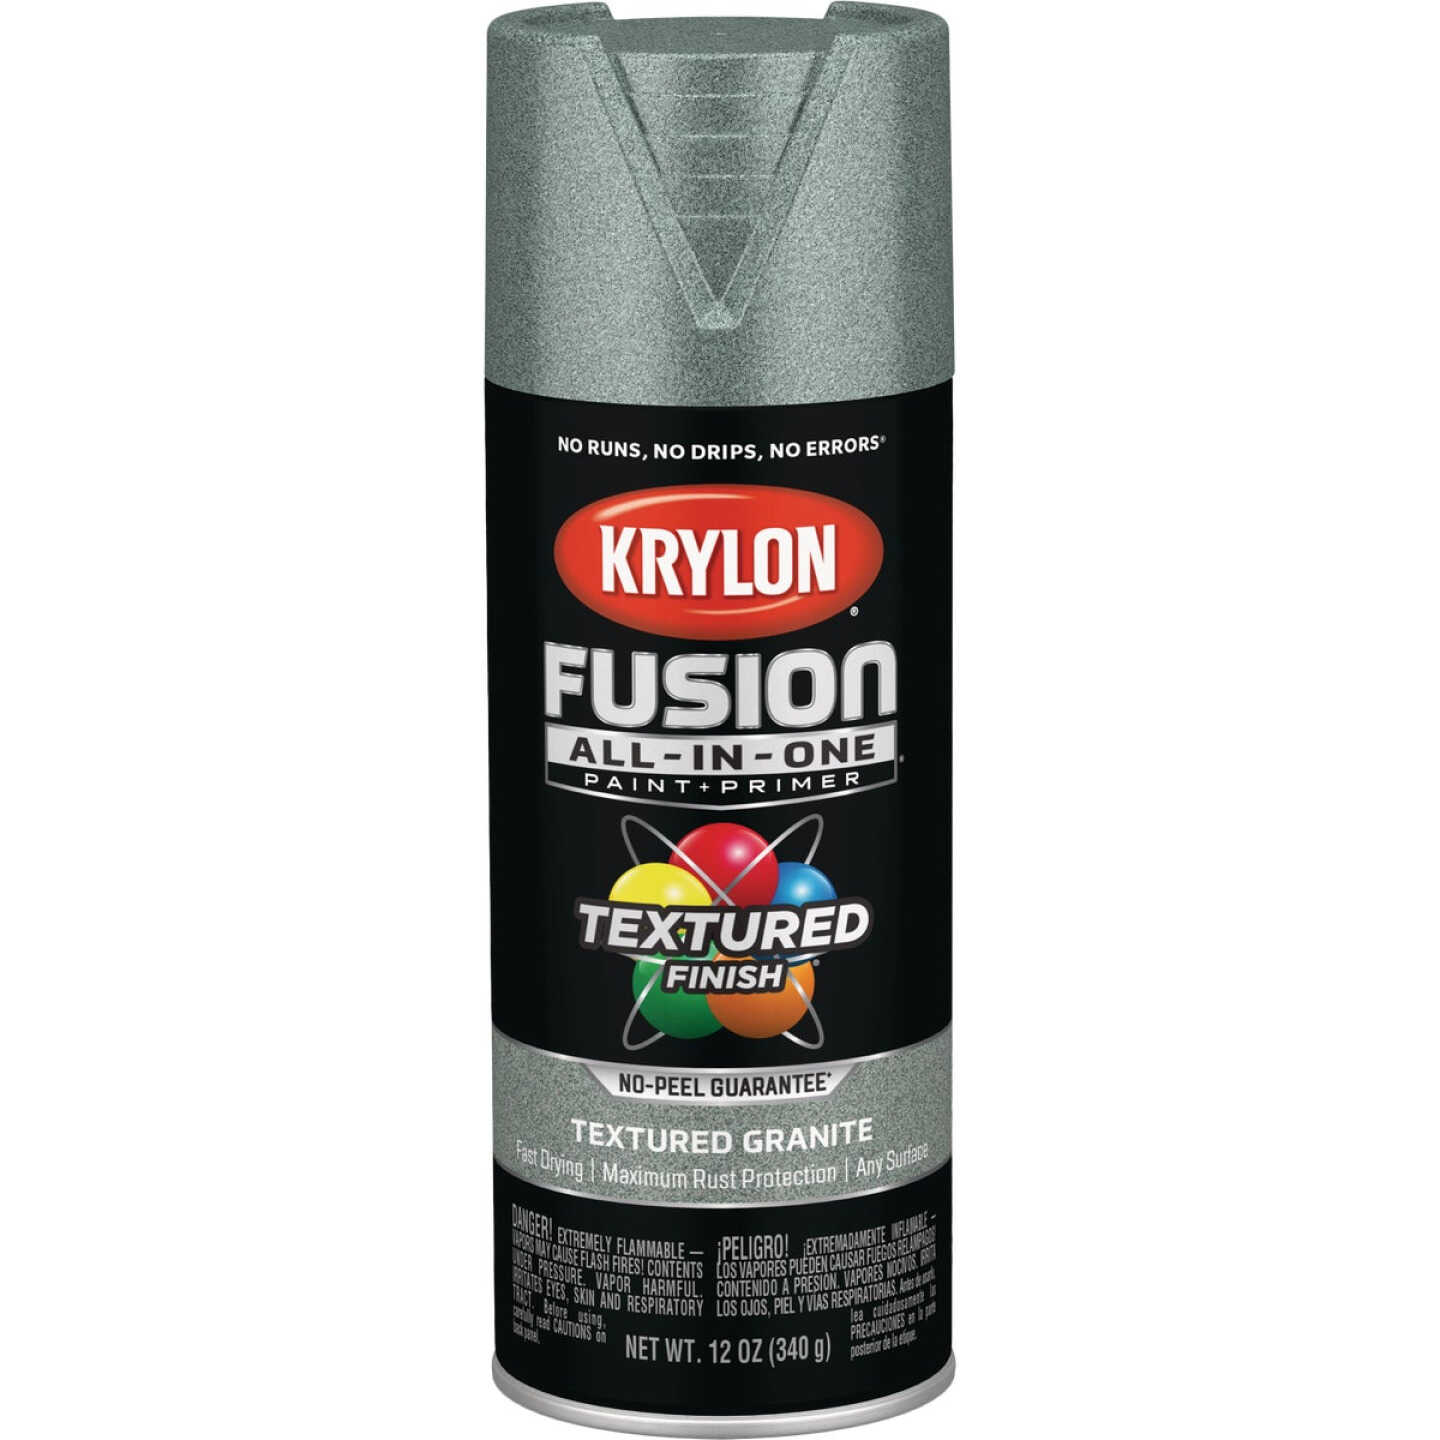 Krylon Fusion All-In-One Textured Spray Paint & Primer, Granite Image 1